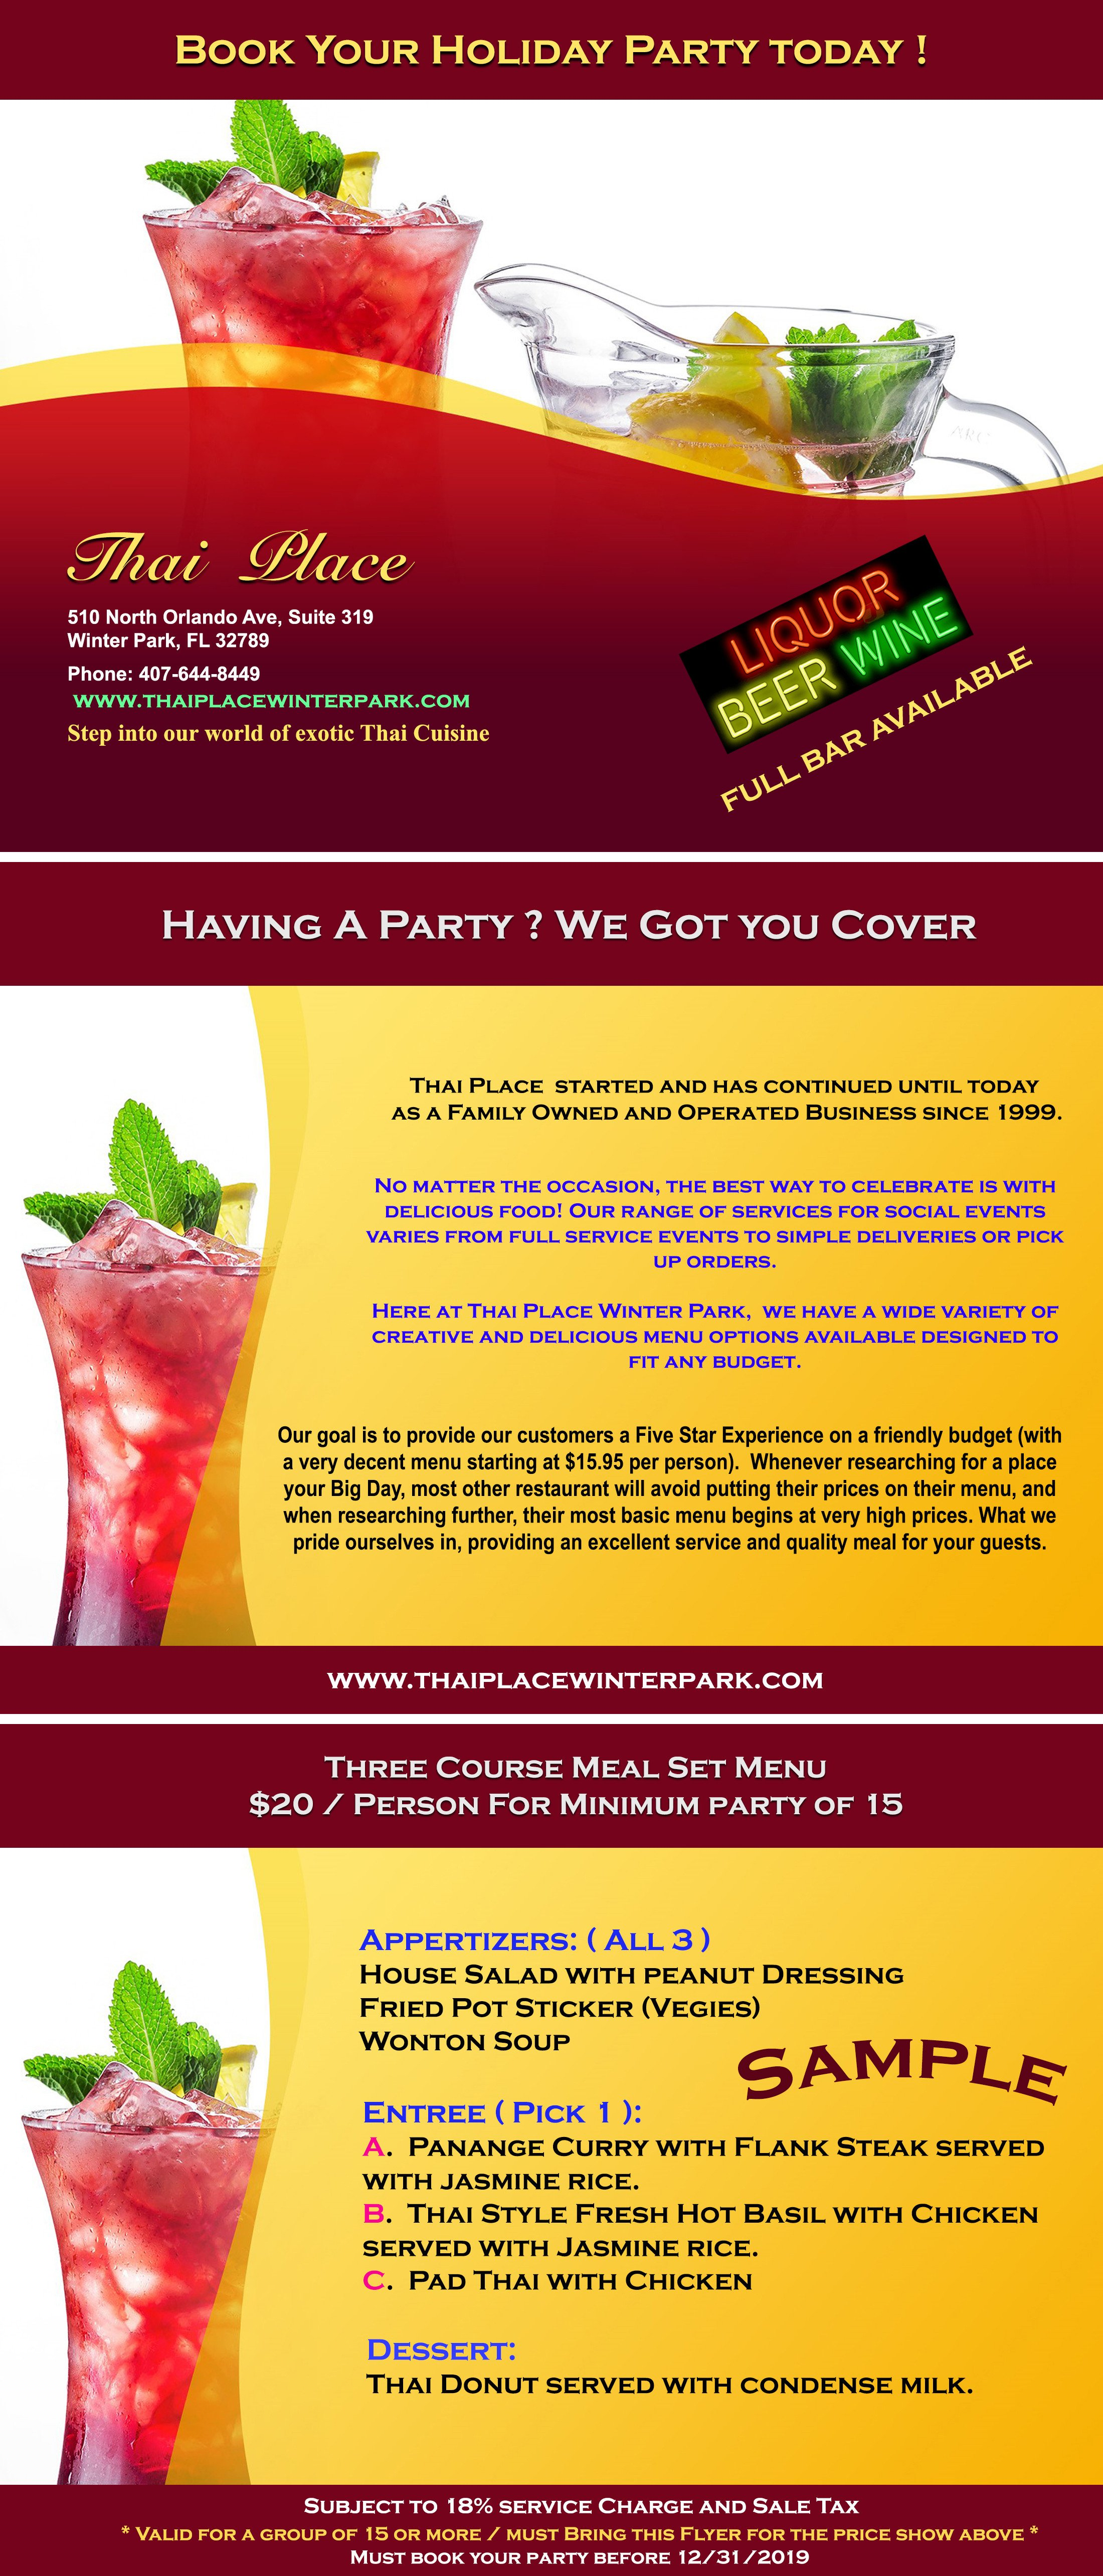 Book Your Holiday Party With Us.